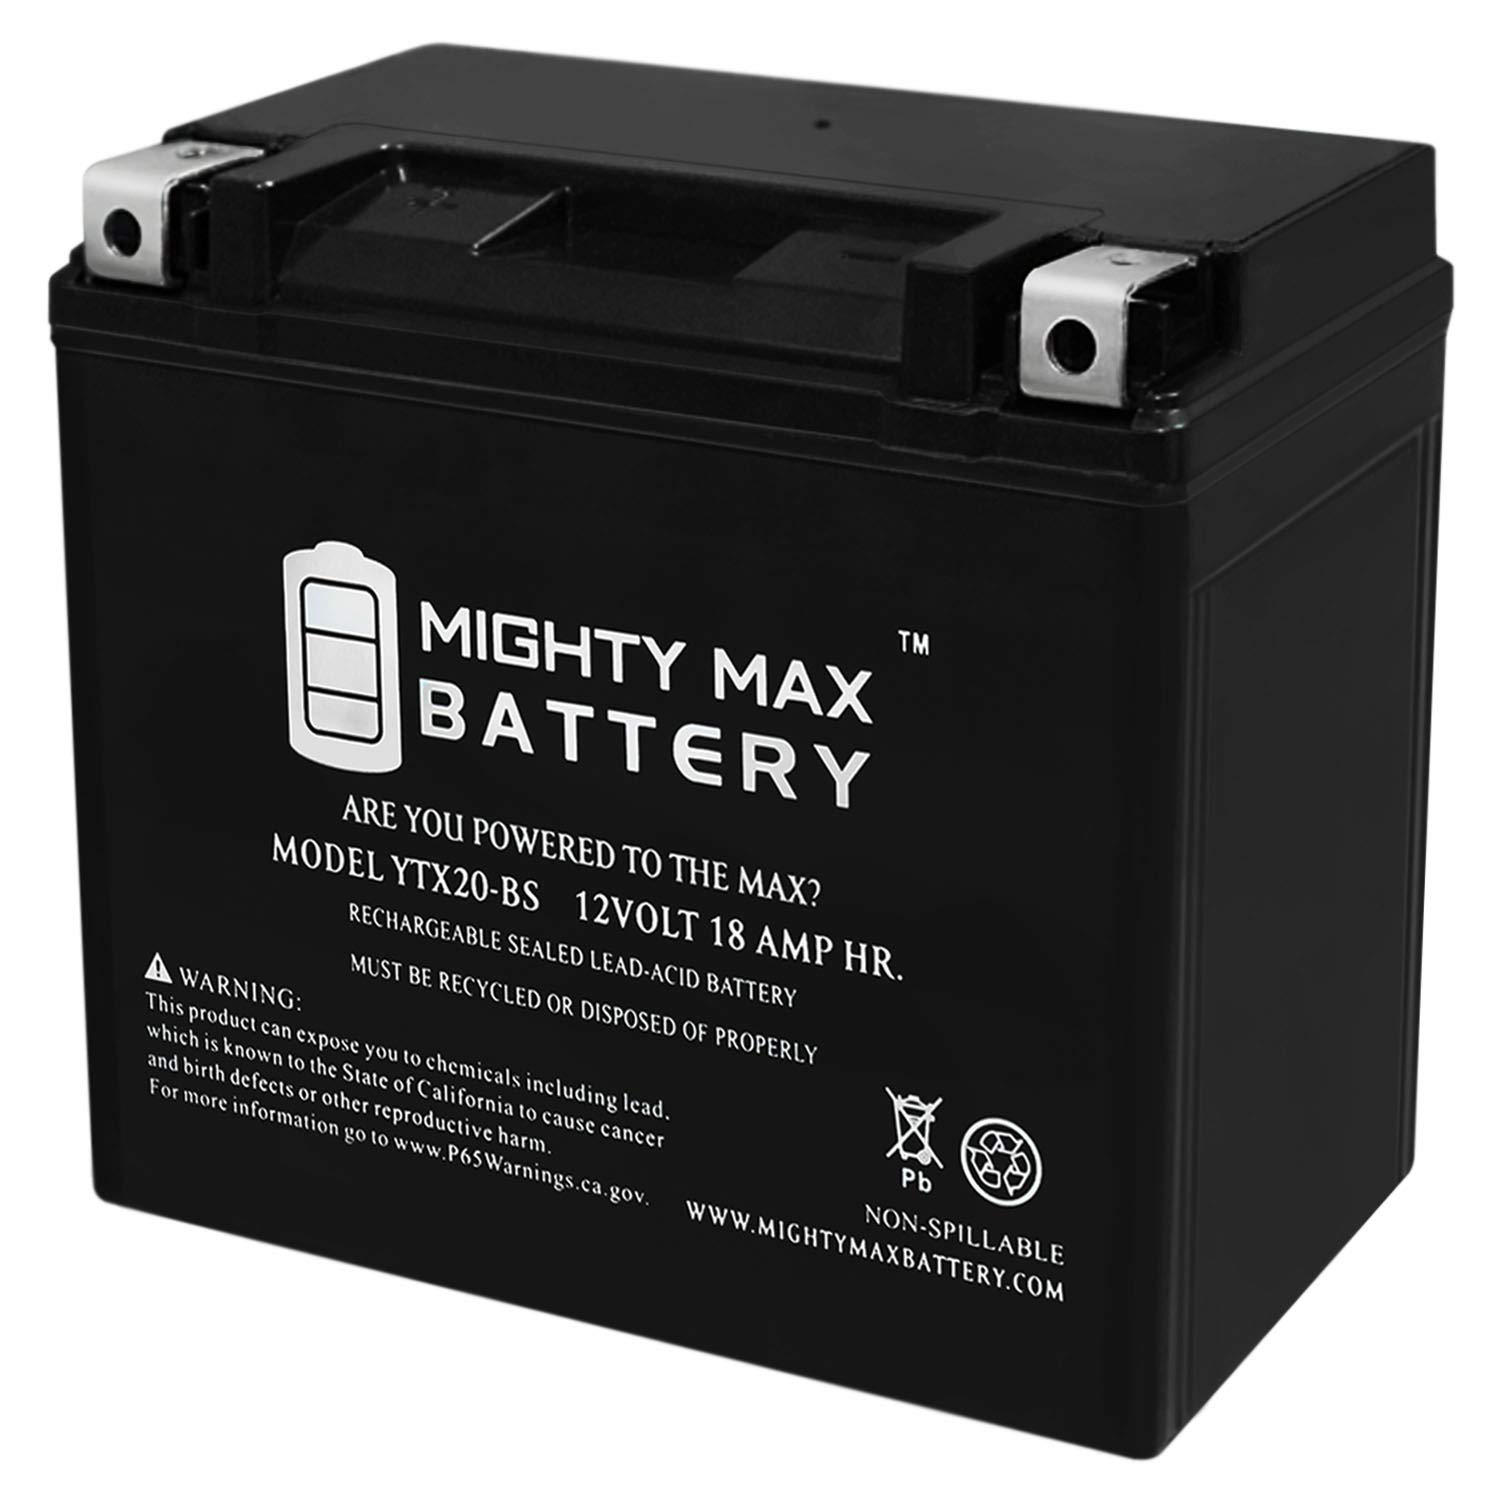 YTX20-BS - 12V 18AH 270 CCA - SLA Power Sport Battery - Mighty Max Battery Brand Product